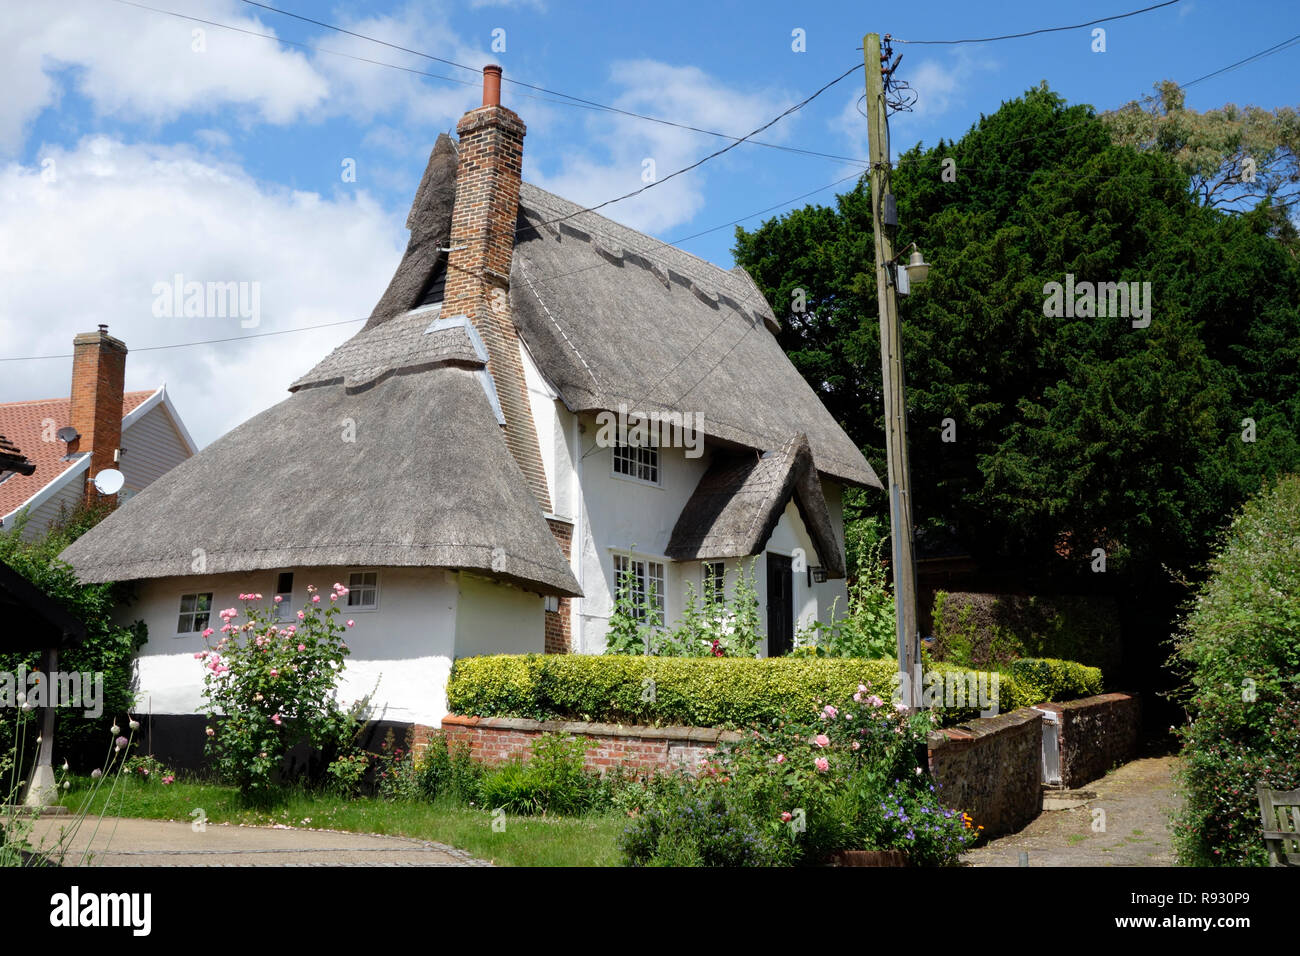 Thatched cottage at the top of the Street, Kersey, Suffolk - Stock Image